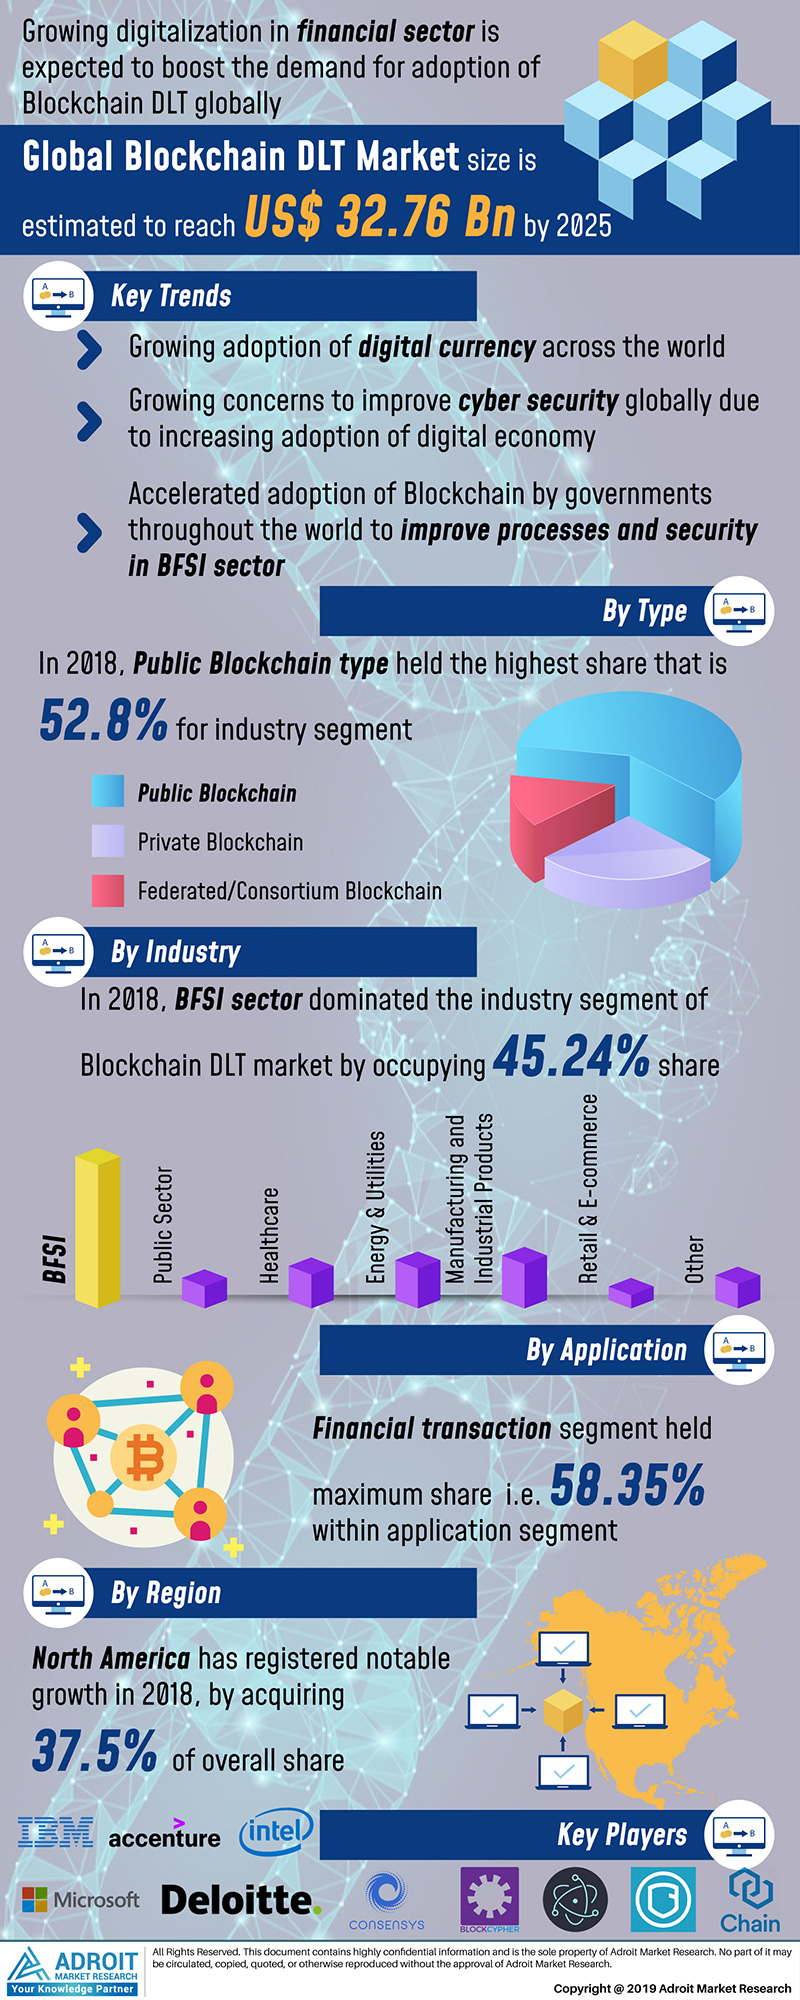 Global Blockchain Distributed Ledger Technology Market Size 2017 By Type, Application, Region and Forecast 2018 to 2025